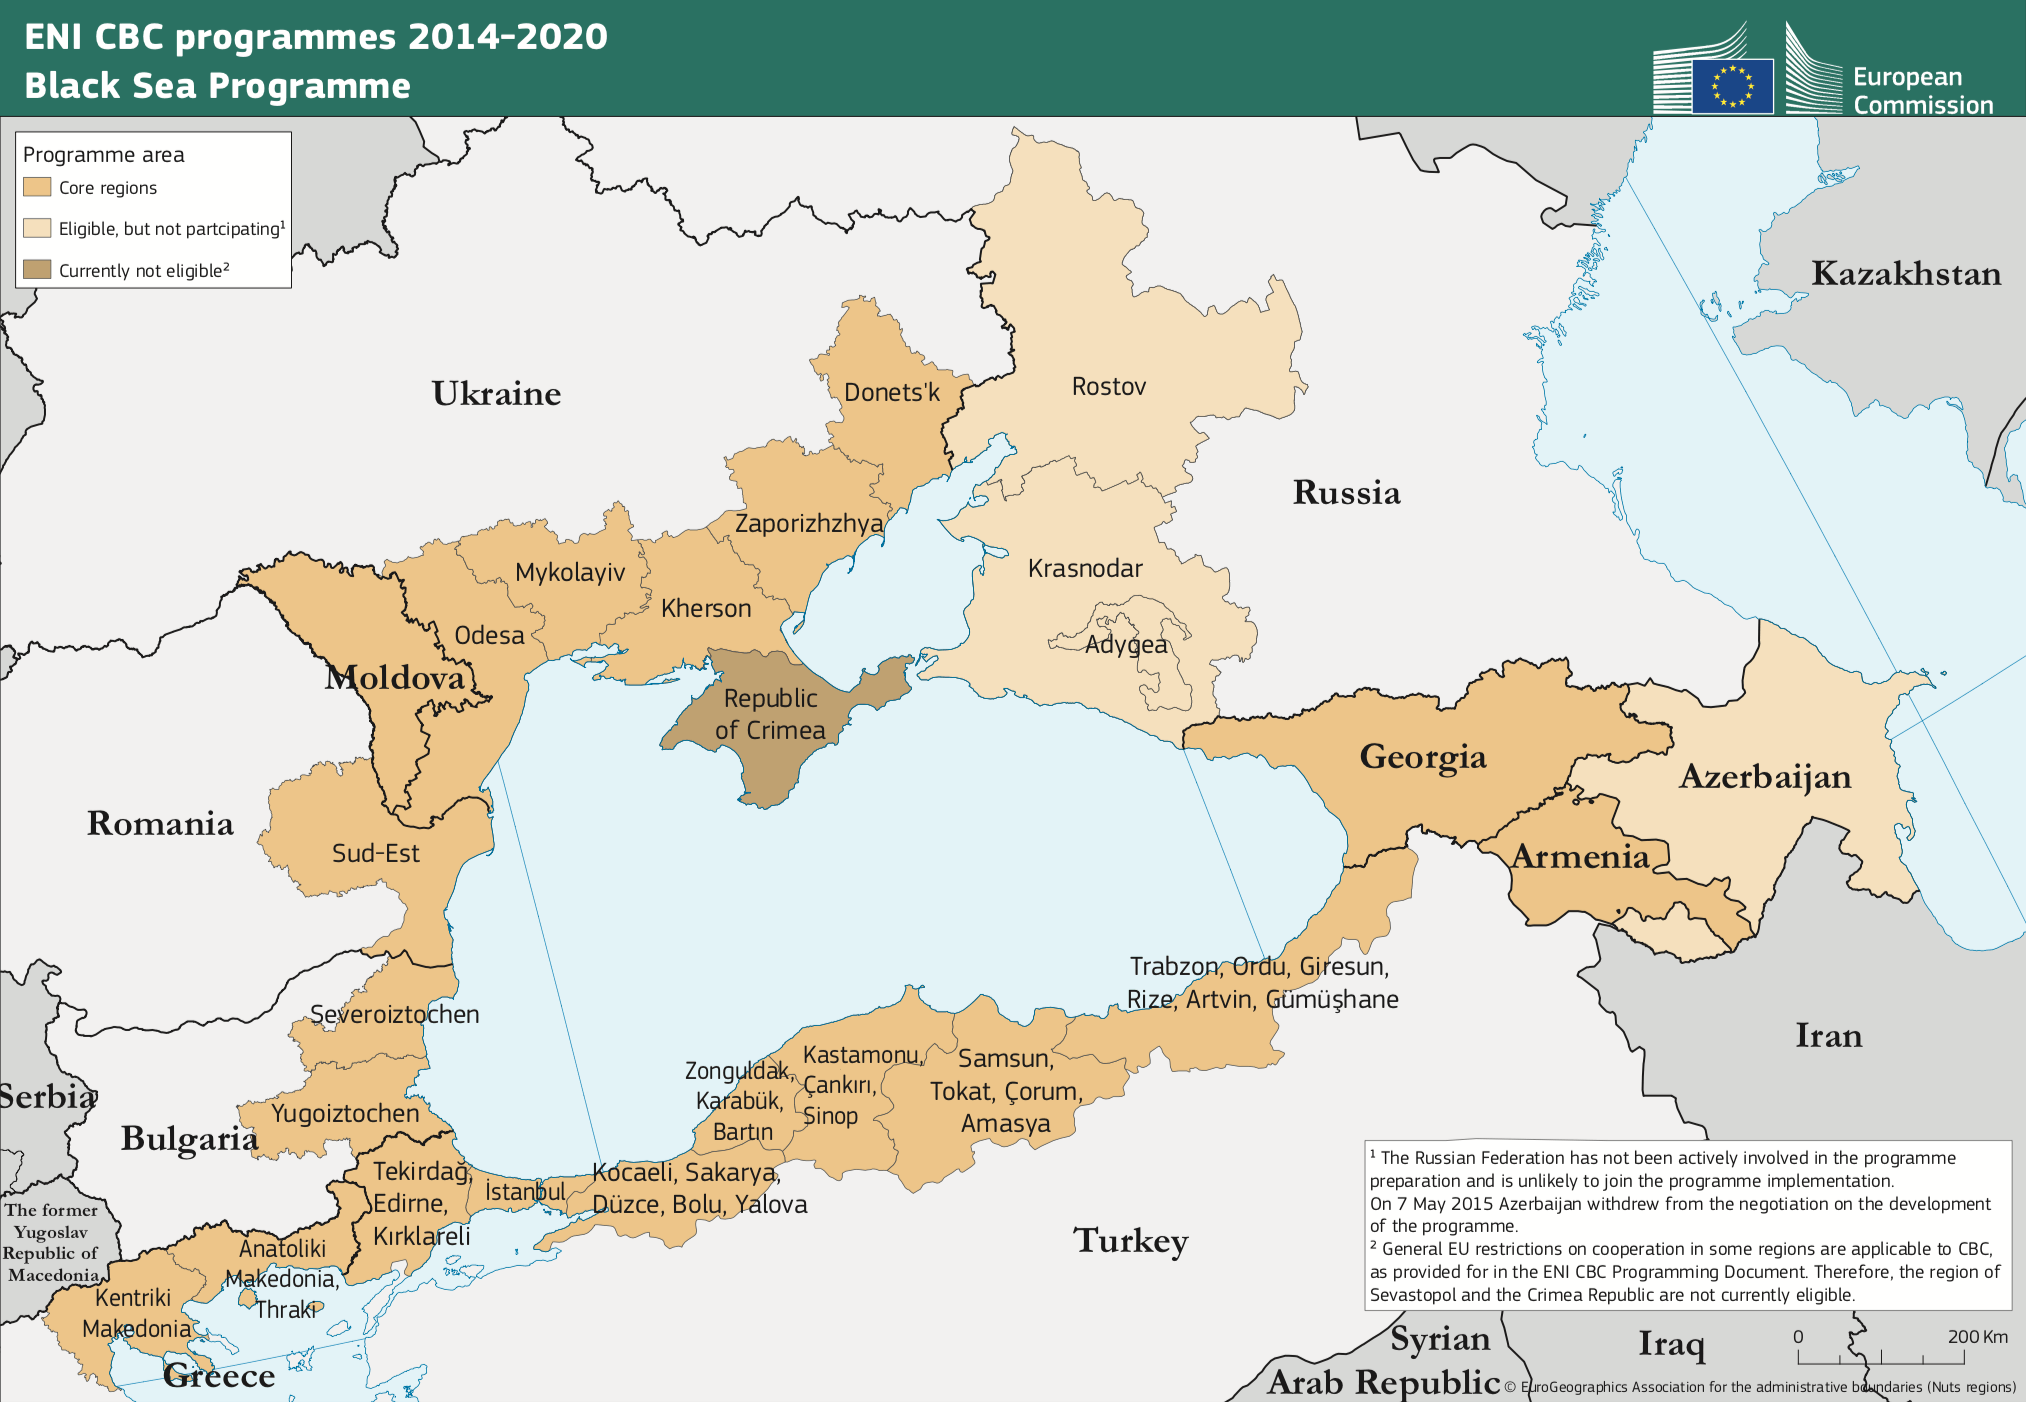 Black Sea ENI CBC Programme 2014-2020